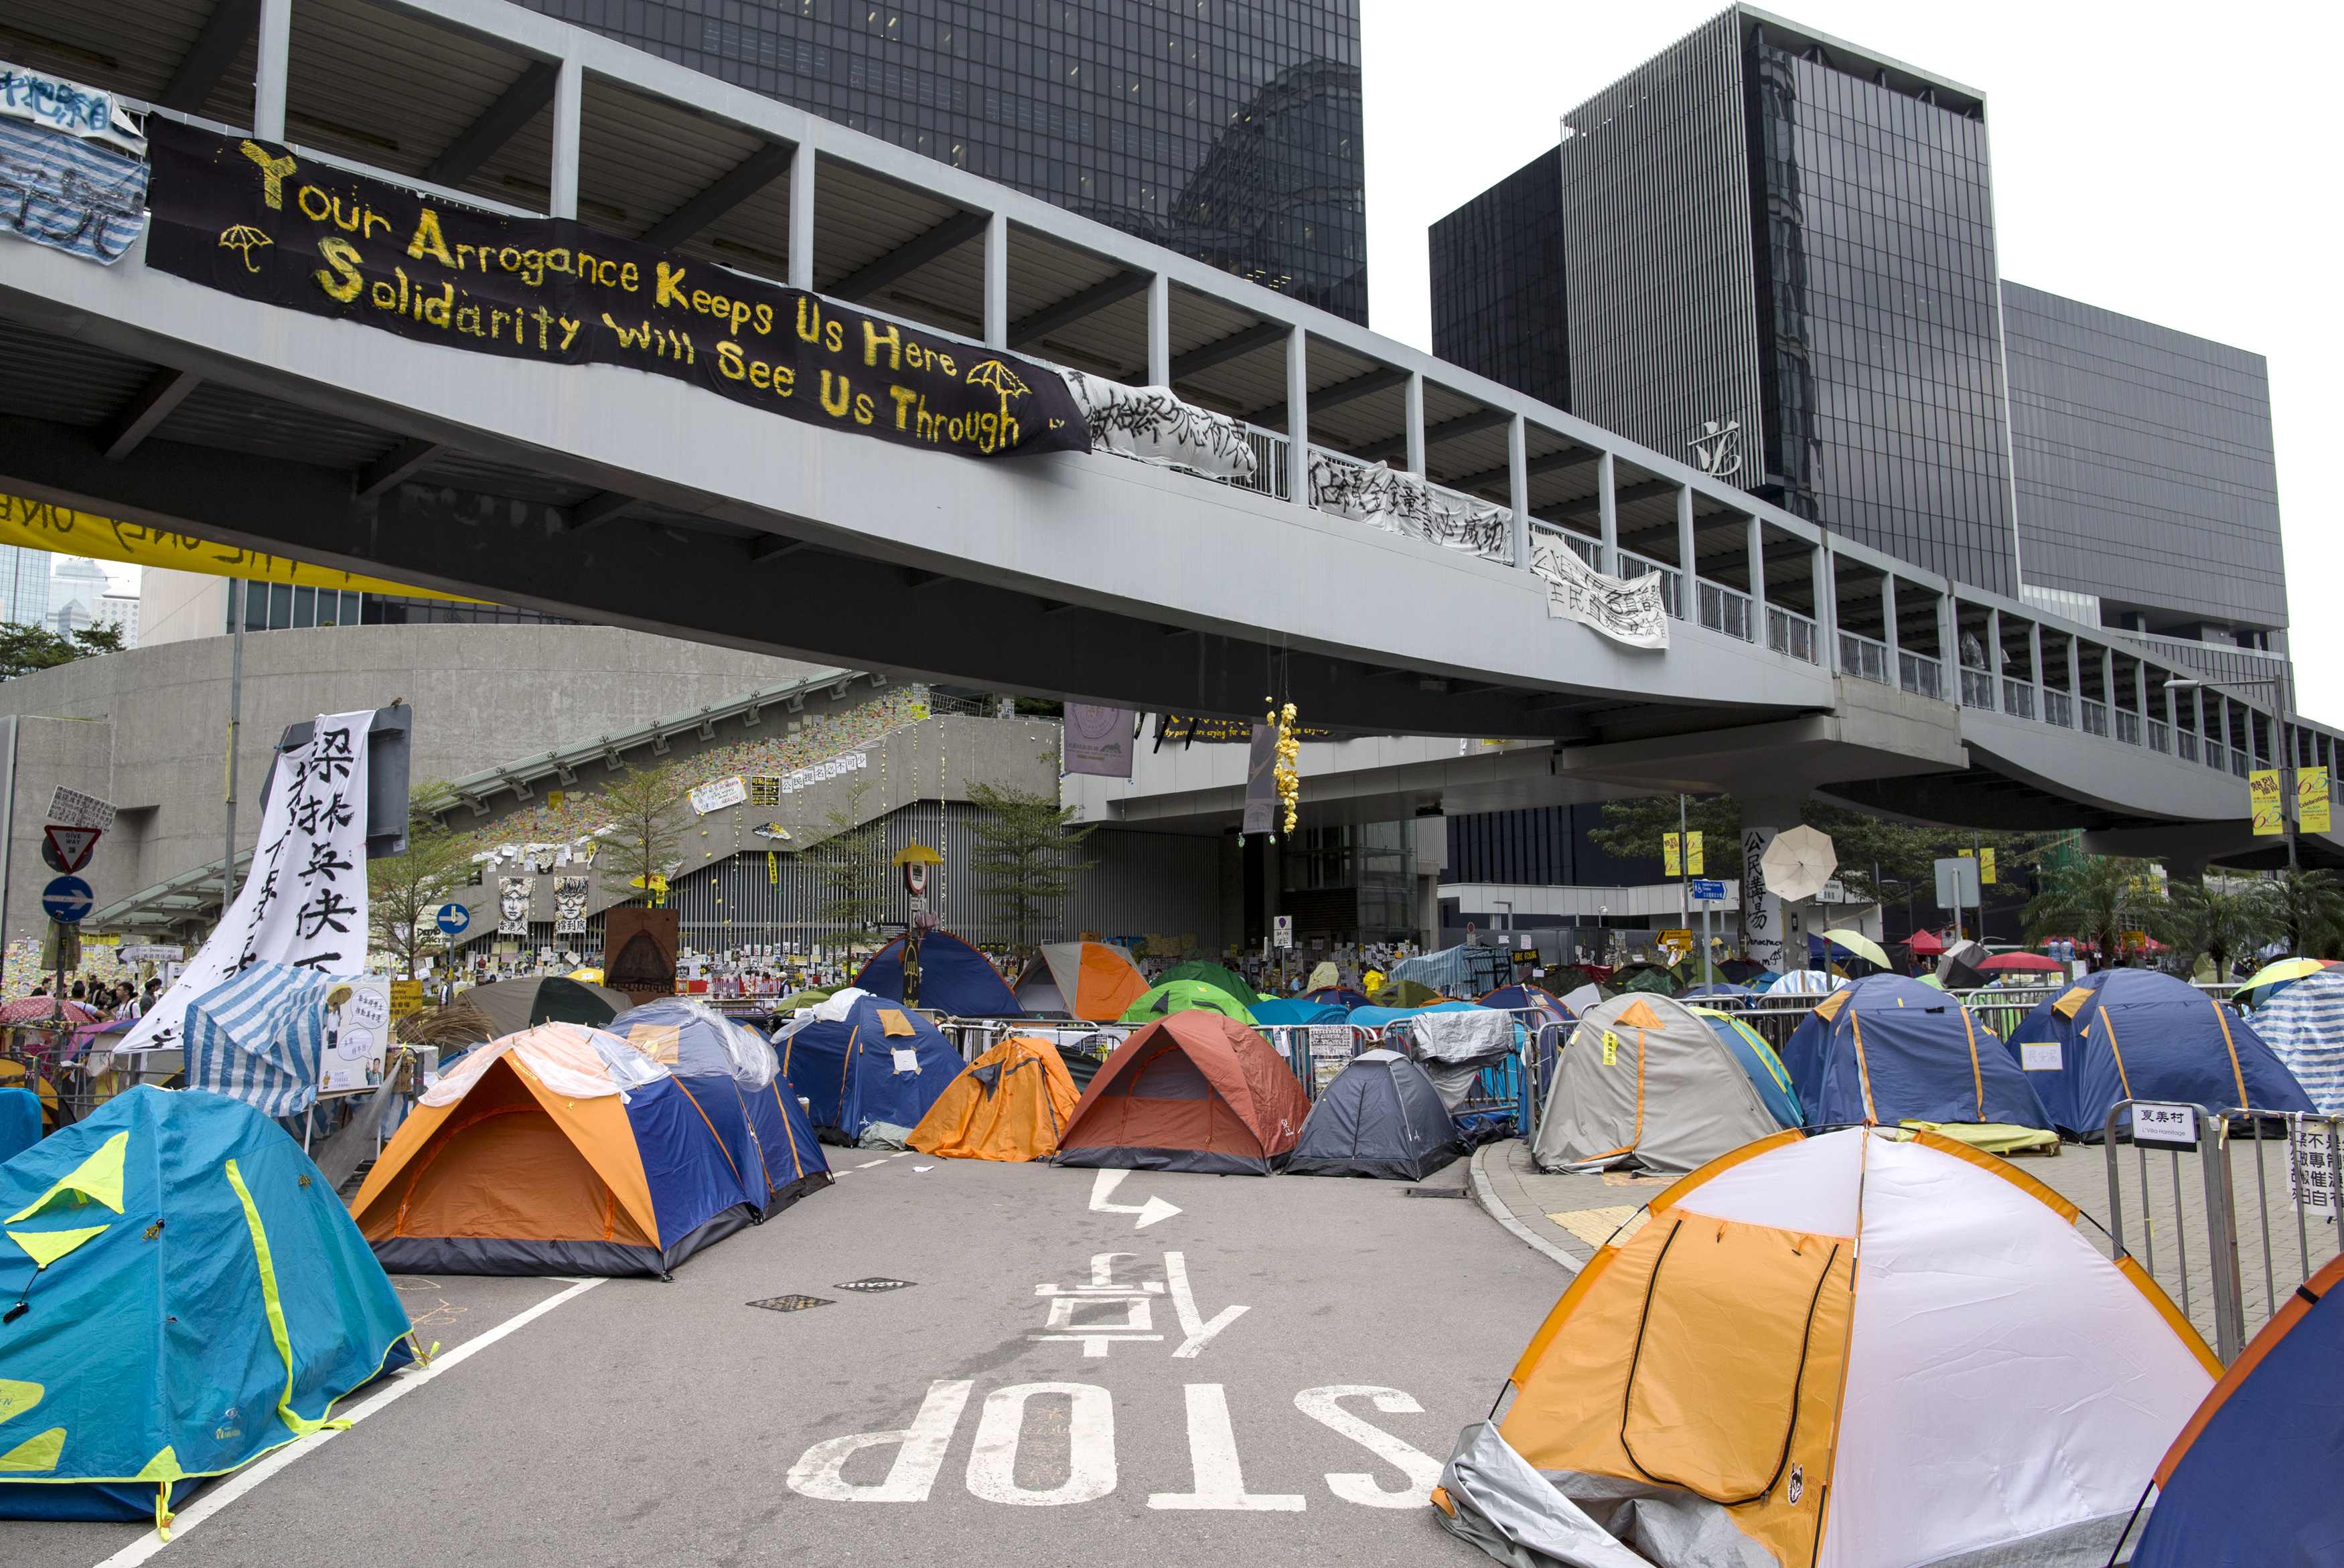 Hong Kong Student Protesters Plan Beijing Visit, but May Not Be Allowed In